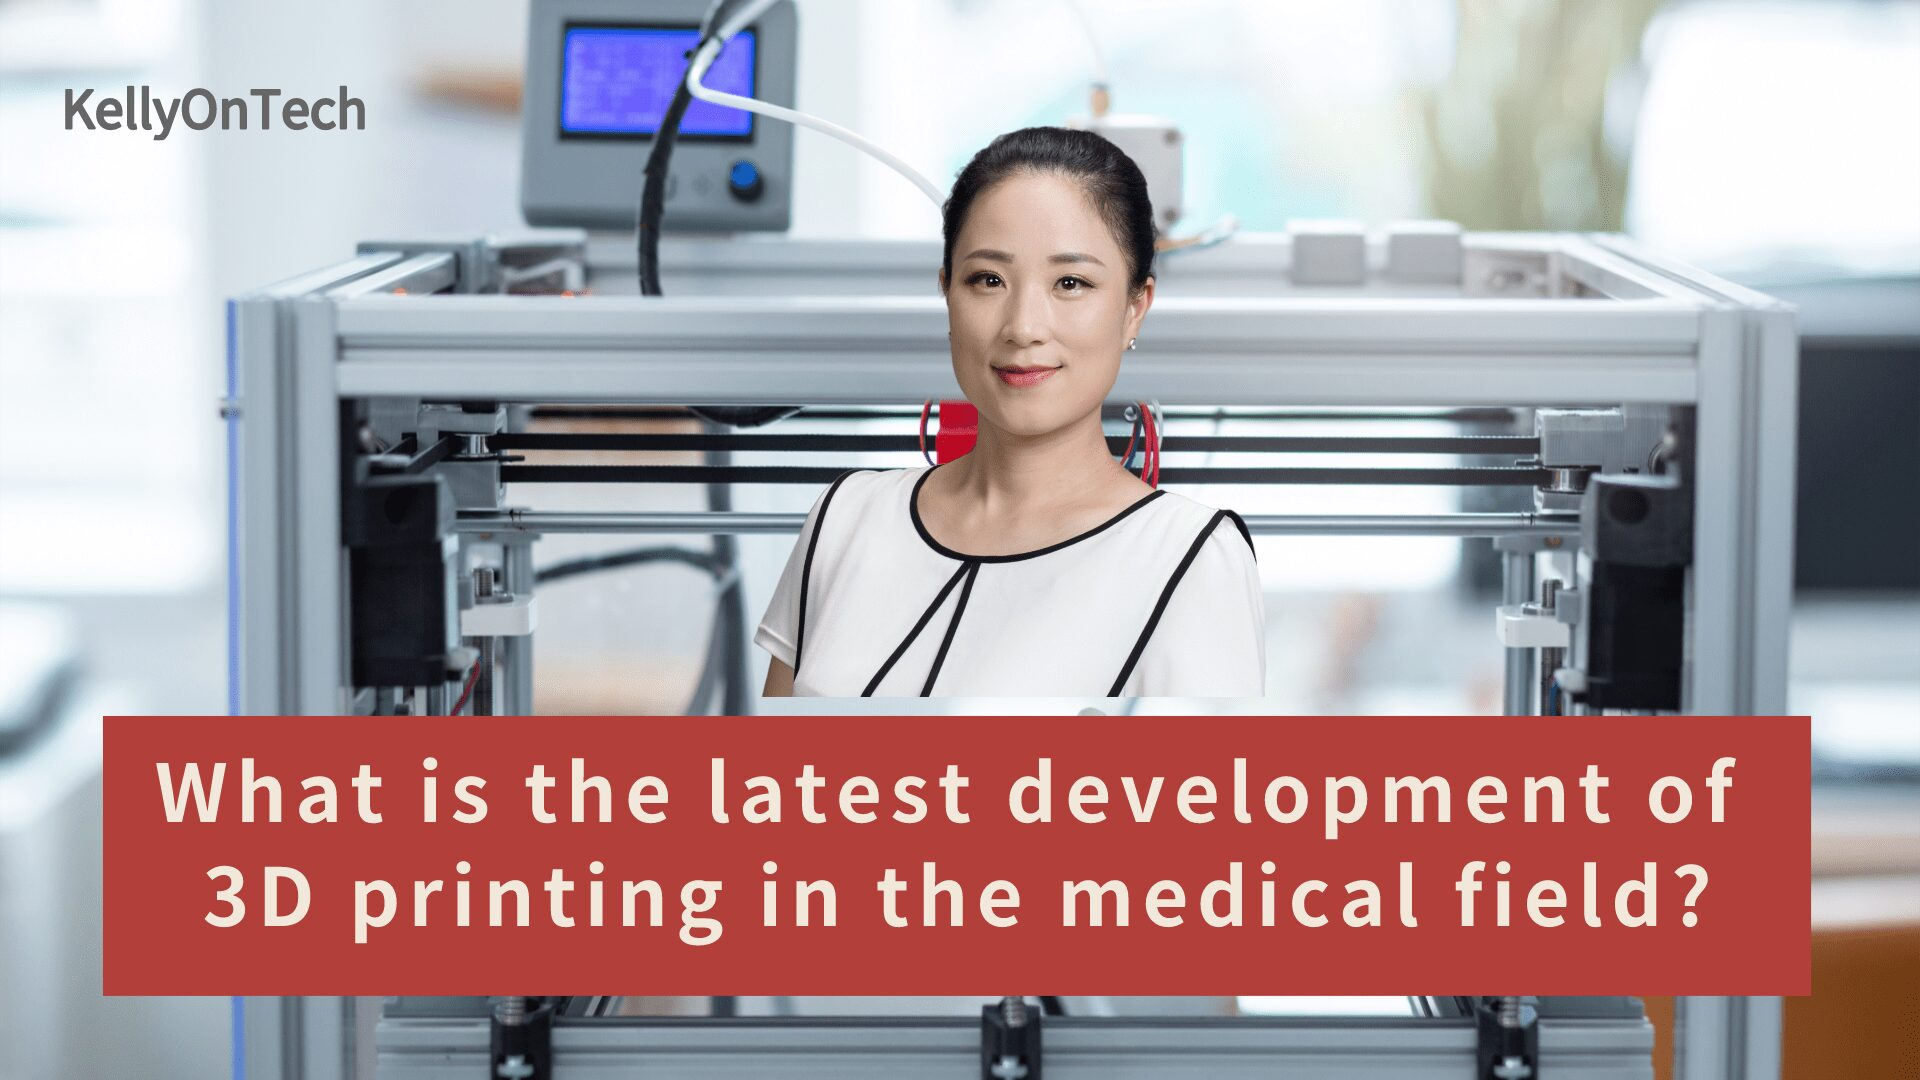 KellyOnTech 3D printing in the medical field